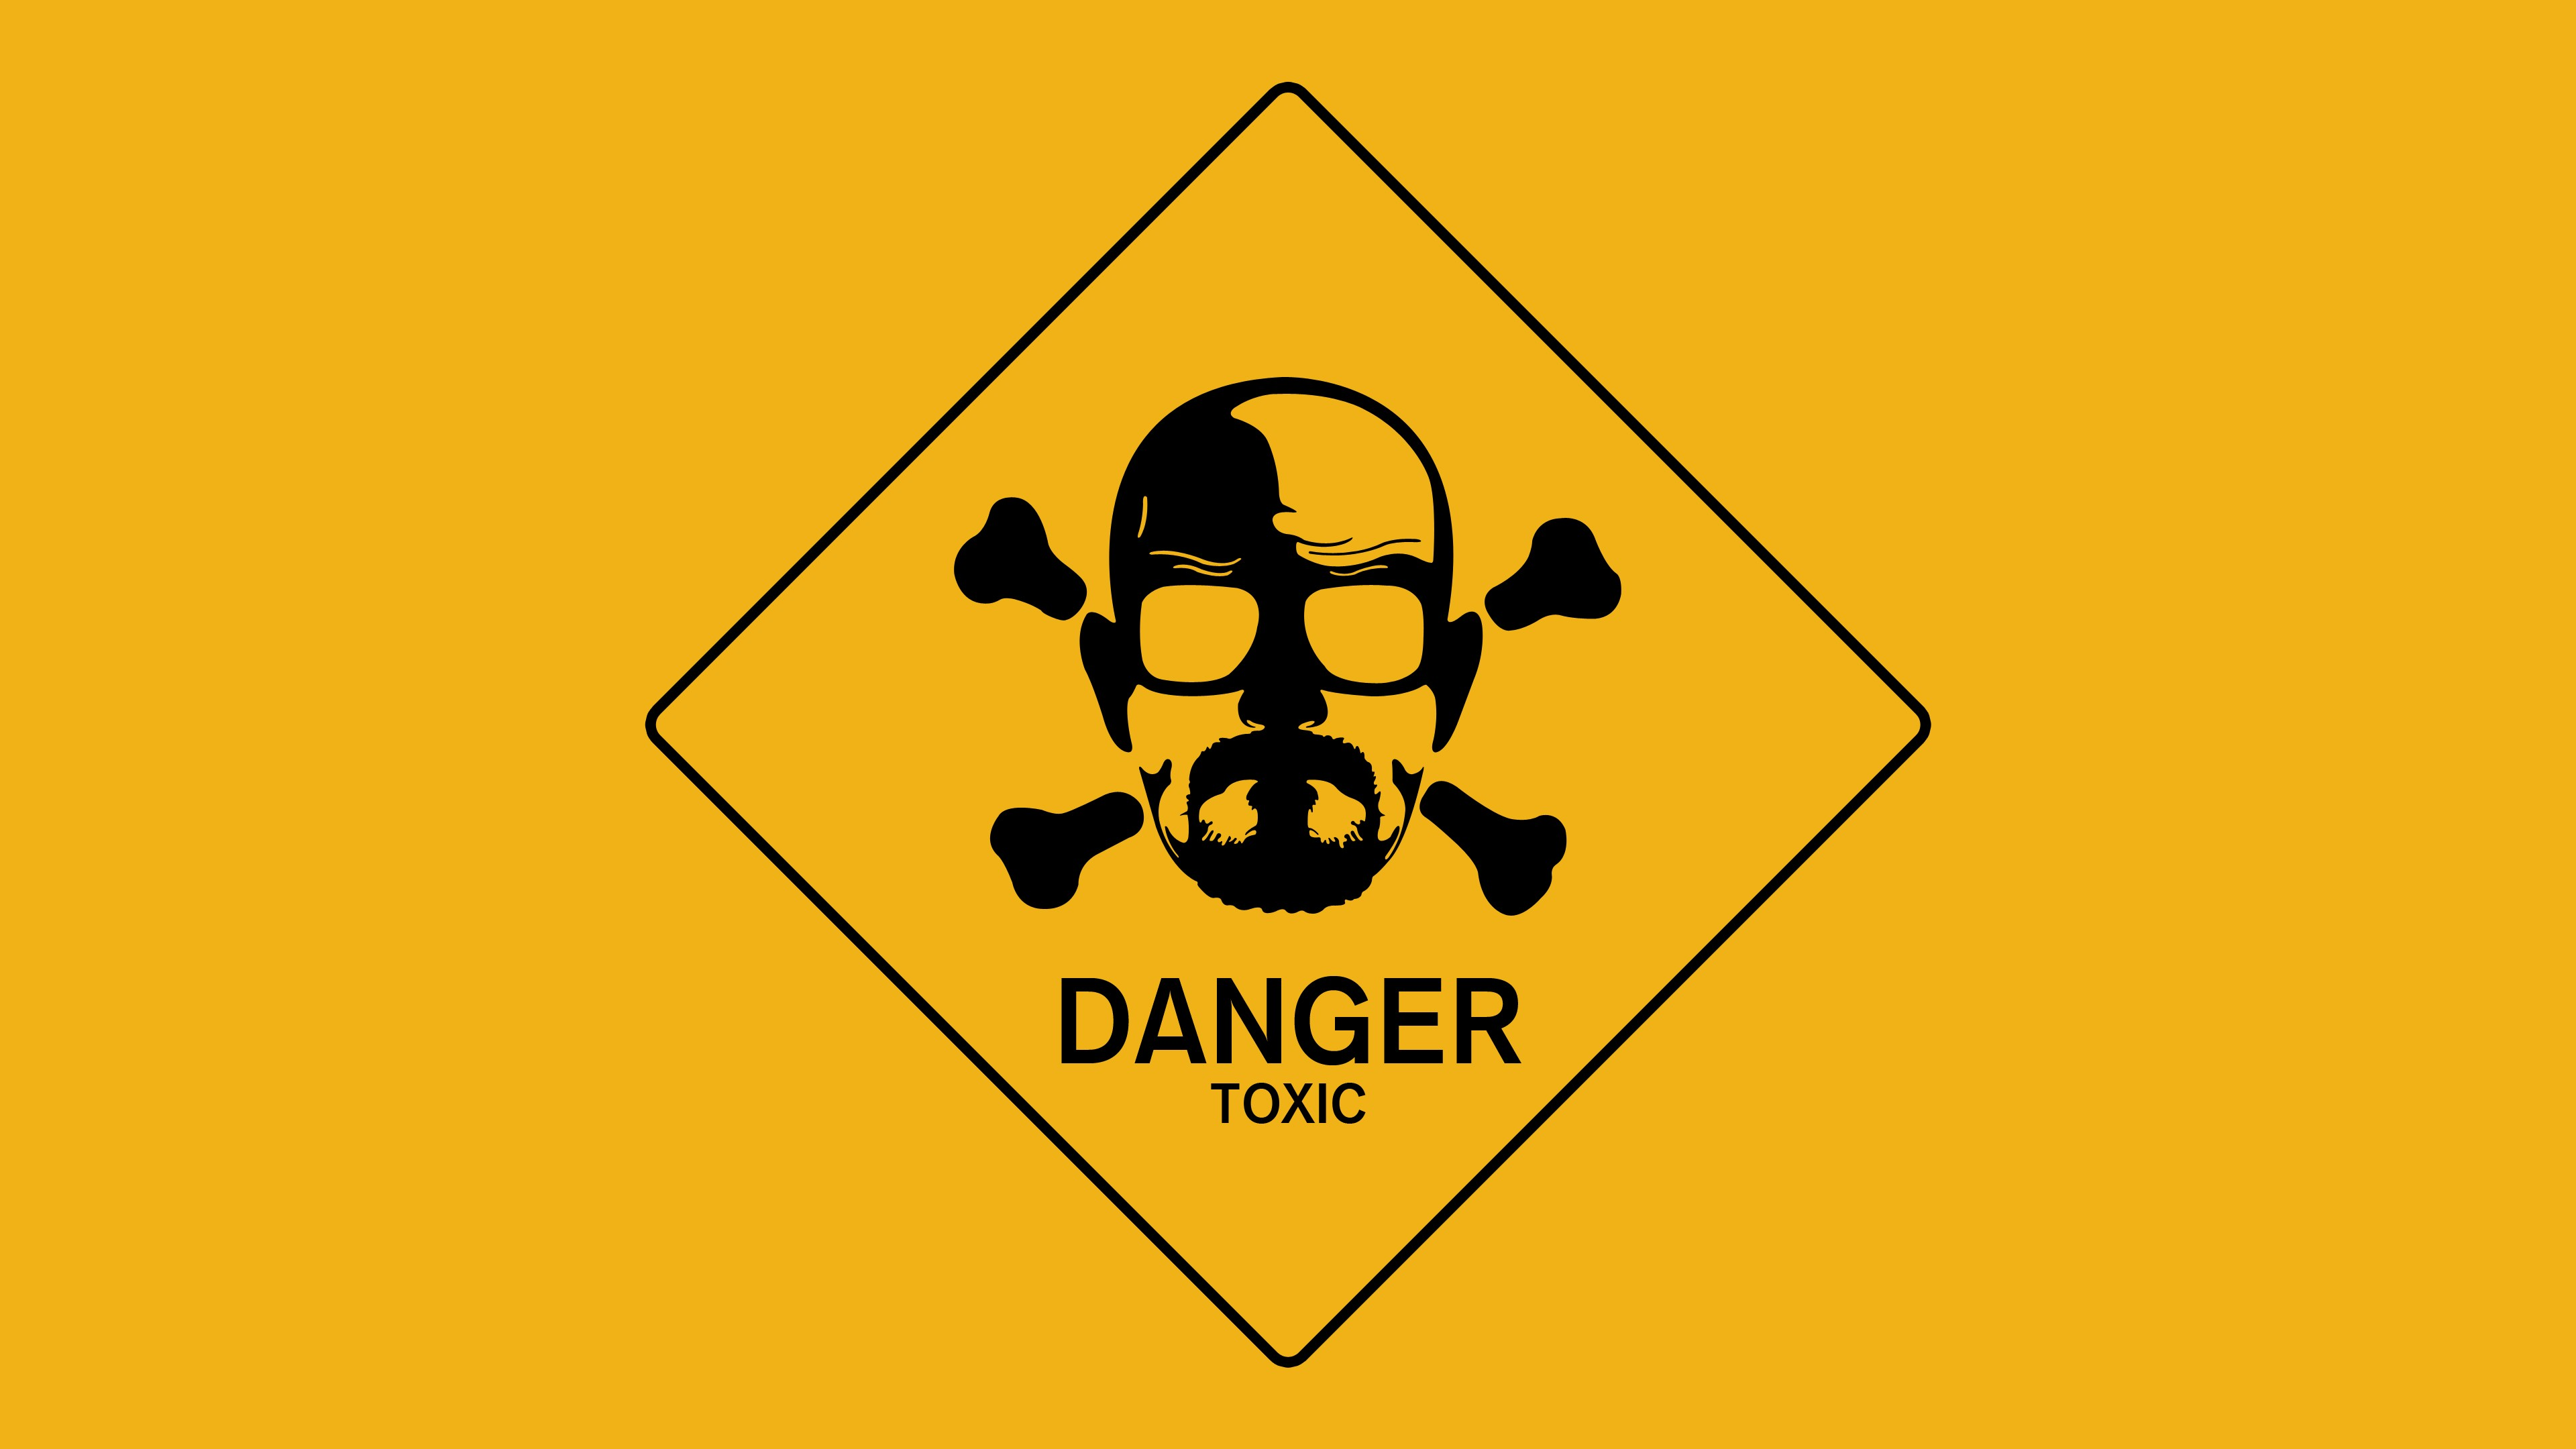 Breaking Bad Walt Danger Toxic Sign wallpaper